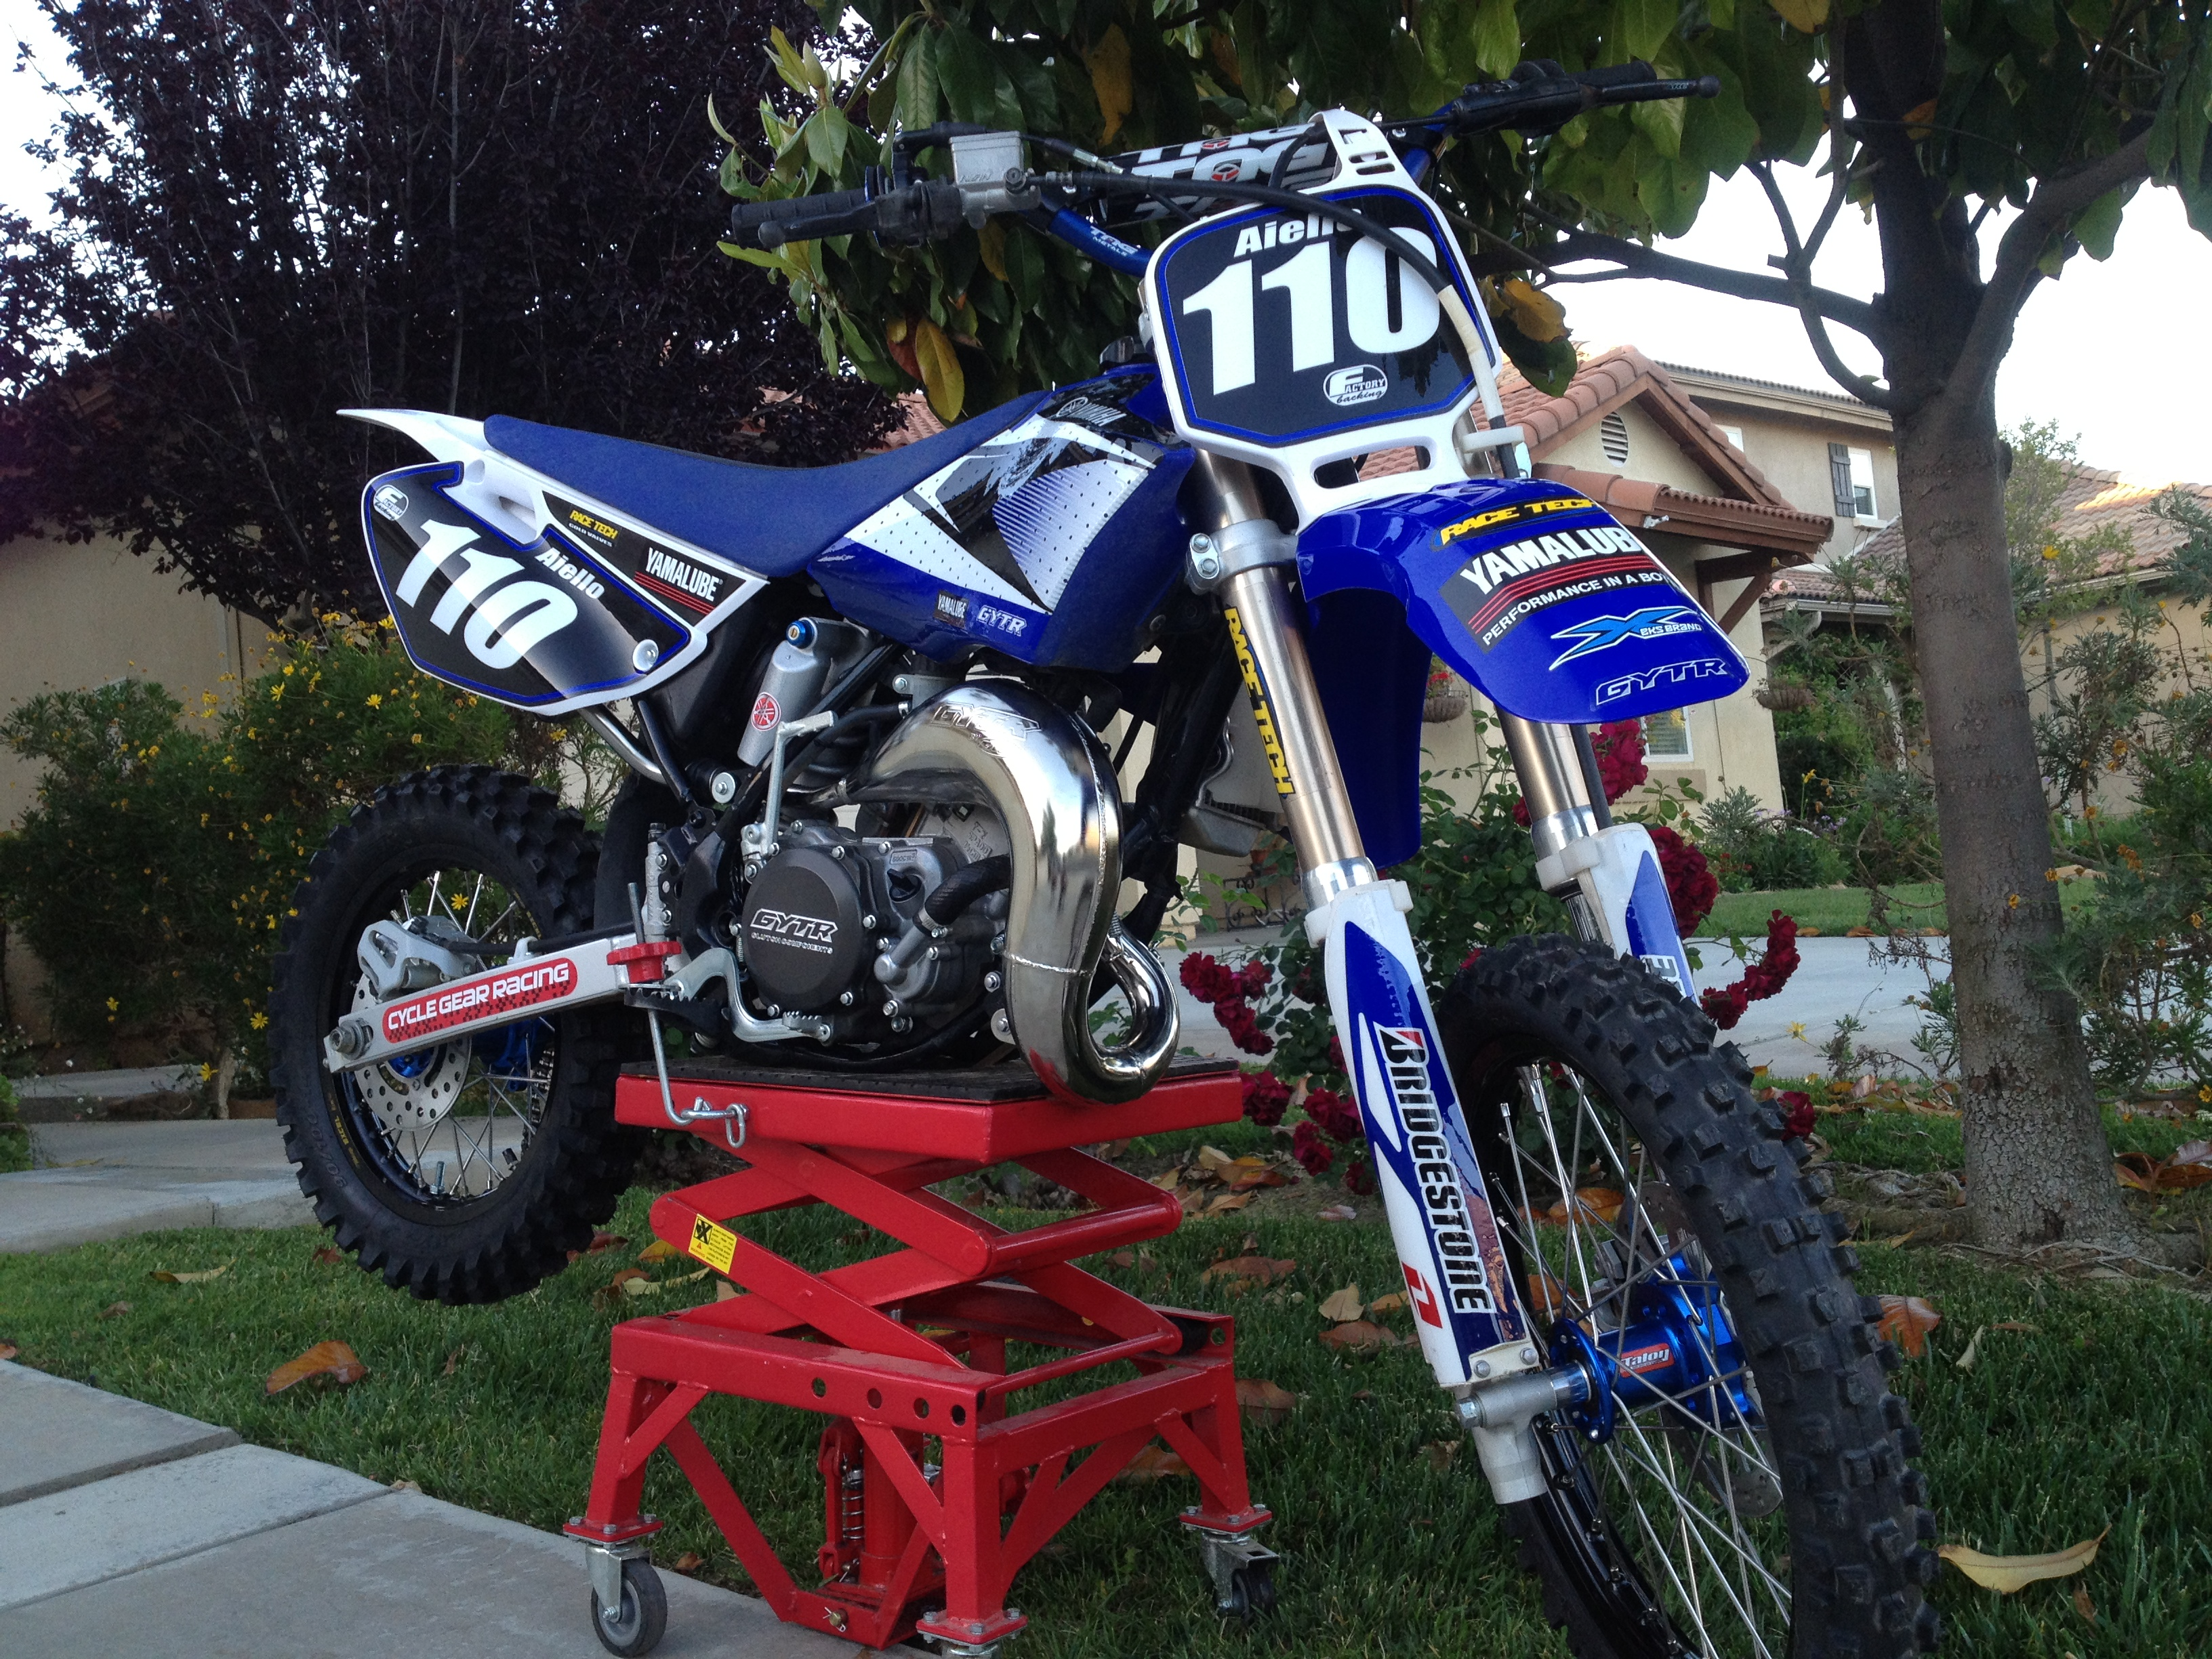 Yz85 Kai 110 S Bike Check Vital Mx